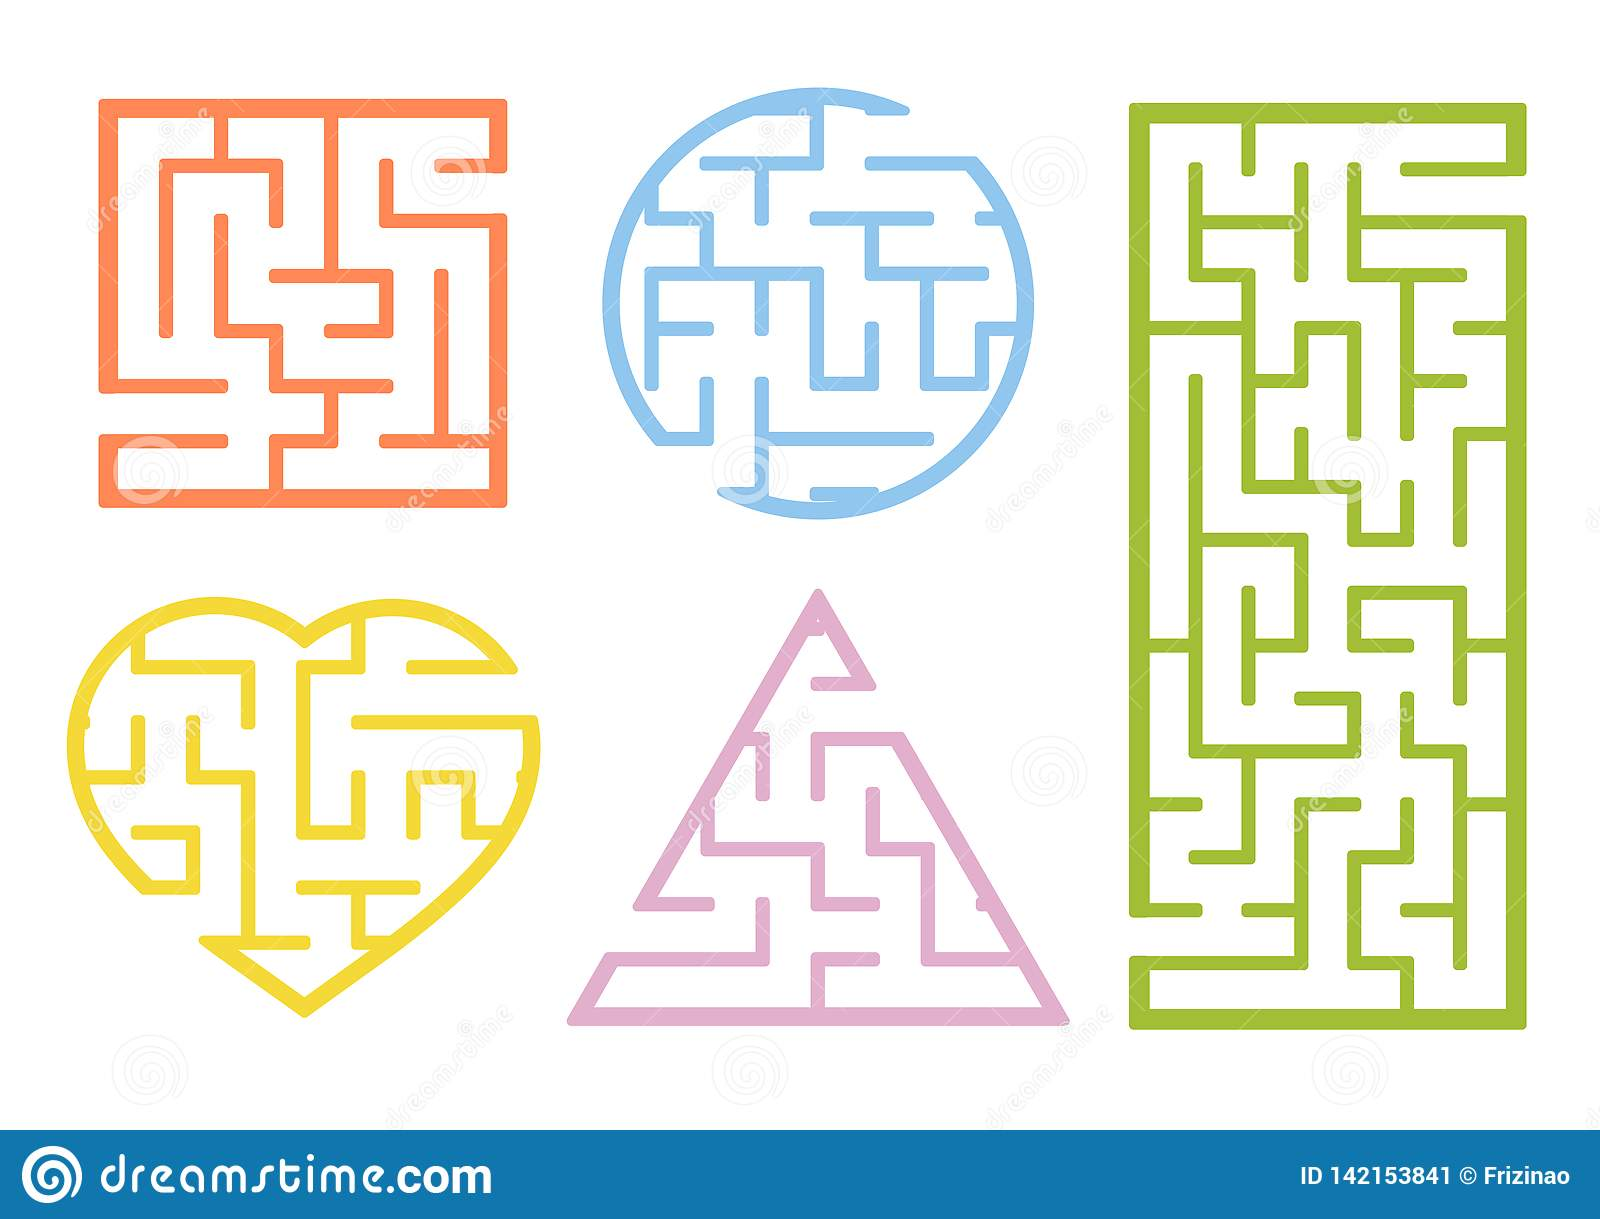 A Set Of Mazes Cartoon Style Visual Worksheets Activity